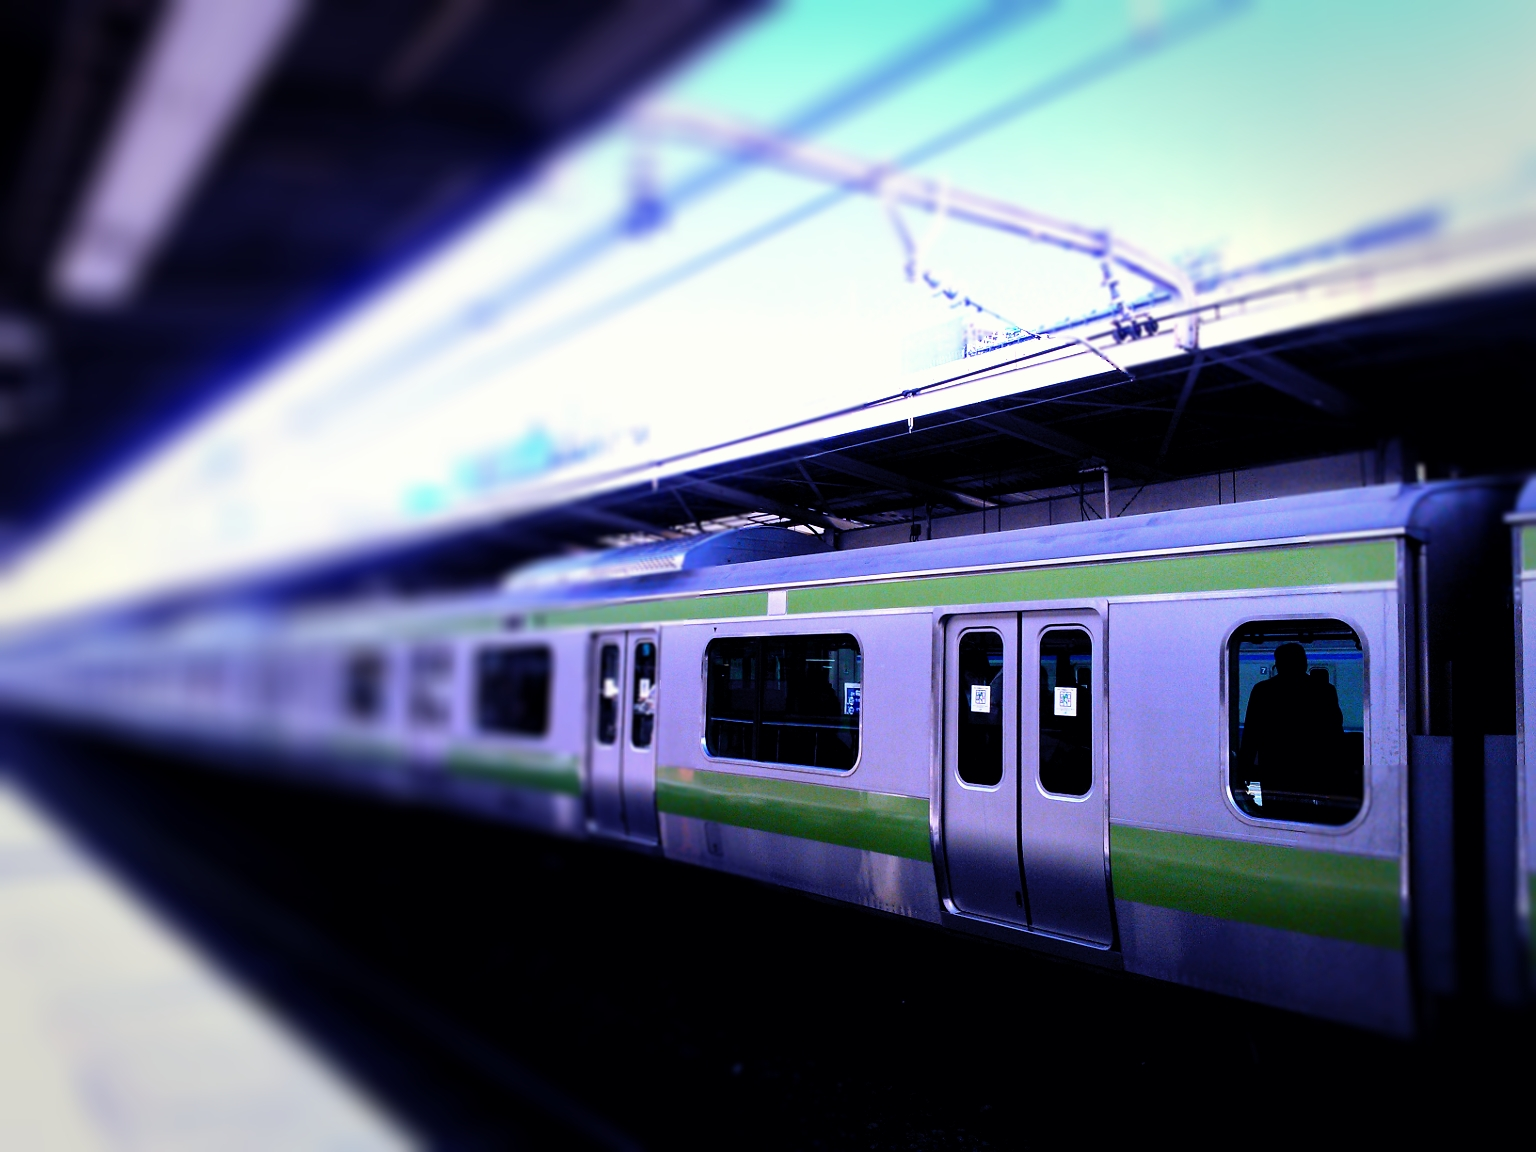 Yamanote line trains in Tokyo